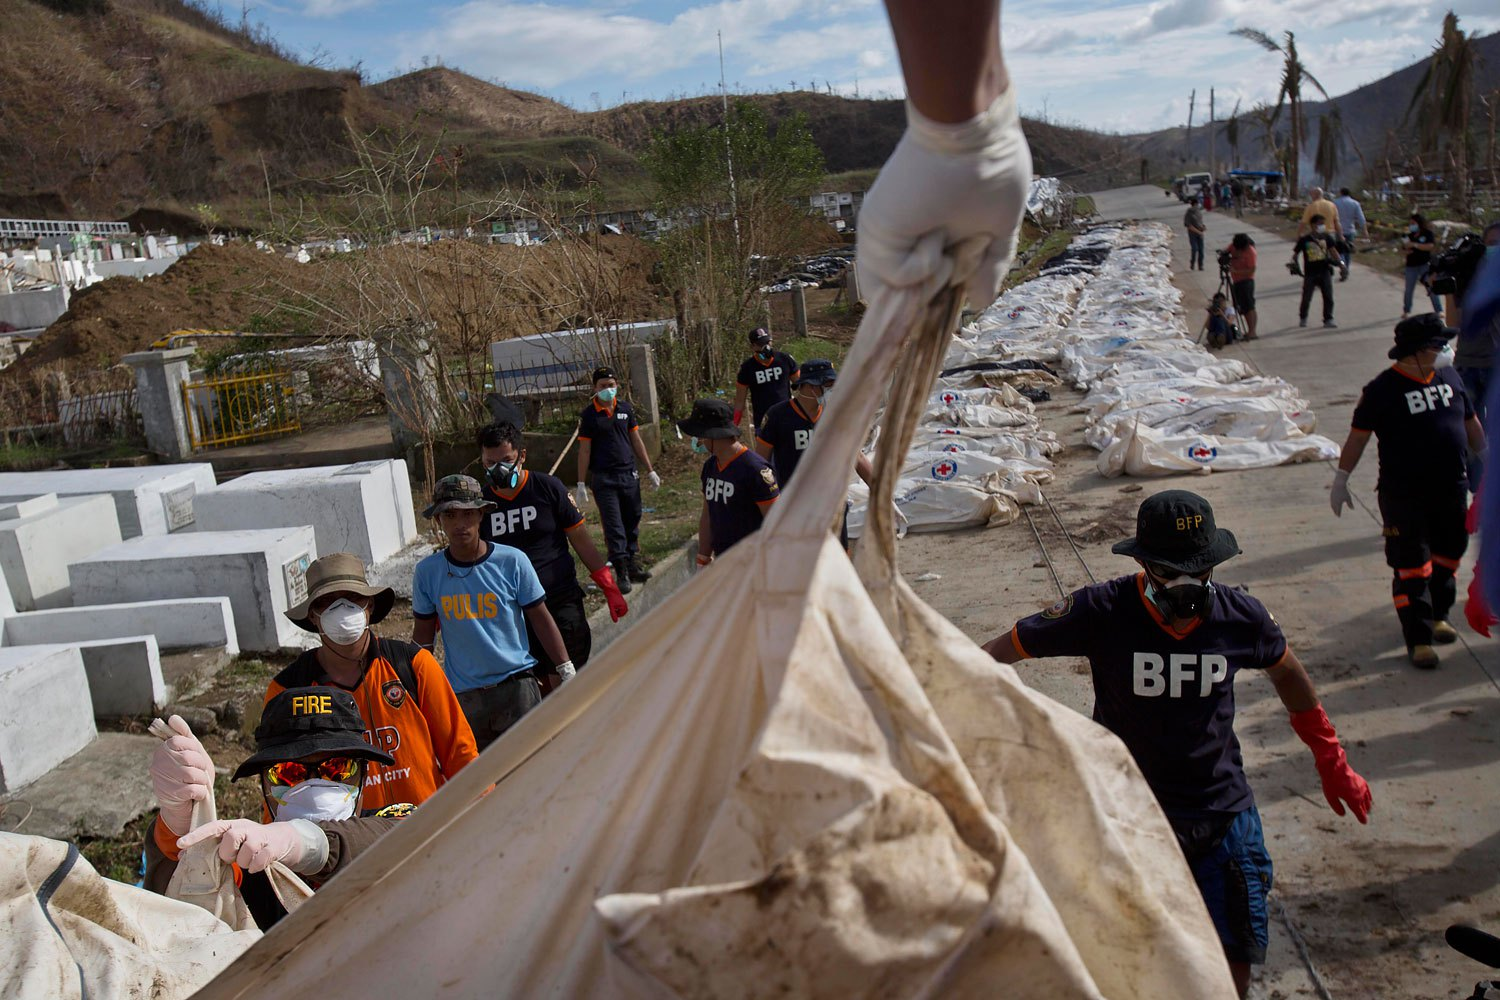 Filipino firemen unload Typhoon Haiyan victims in body bags from a truck on the roadside until forensic experts can register and bury them in a mass grave outside of Tacloban, Philippines on November 19, 2013.